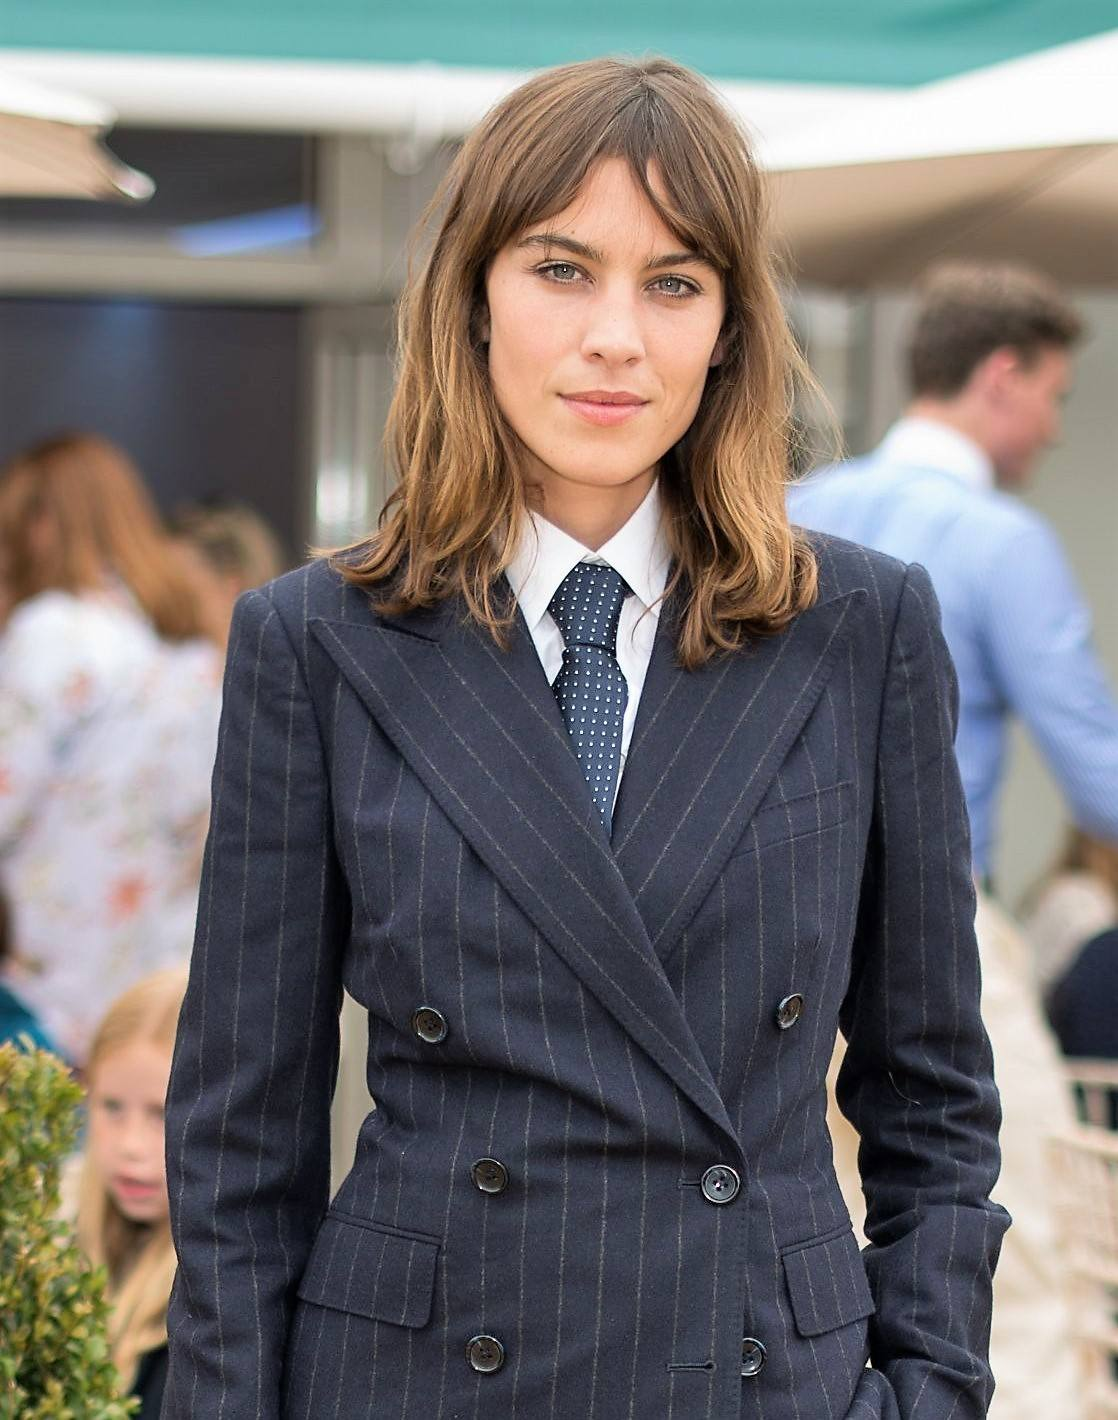 alexa chung at wimbledon 2017 with her medium length hair in tousled waves with split bangs